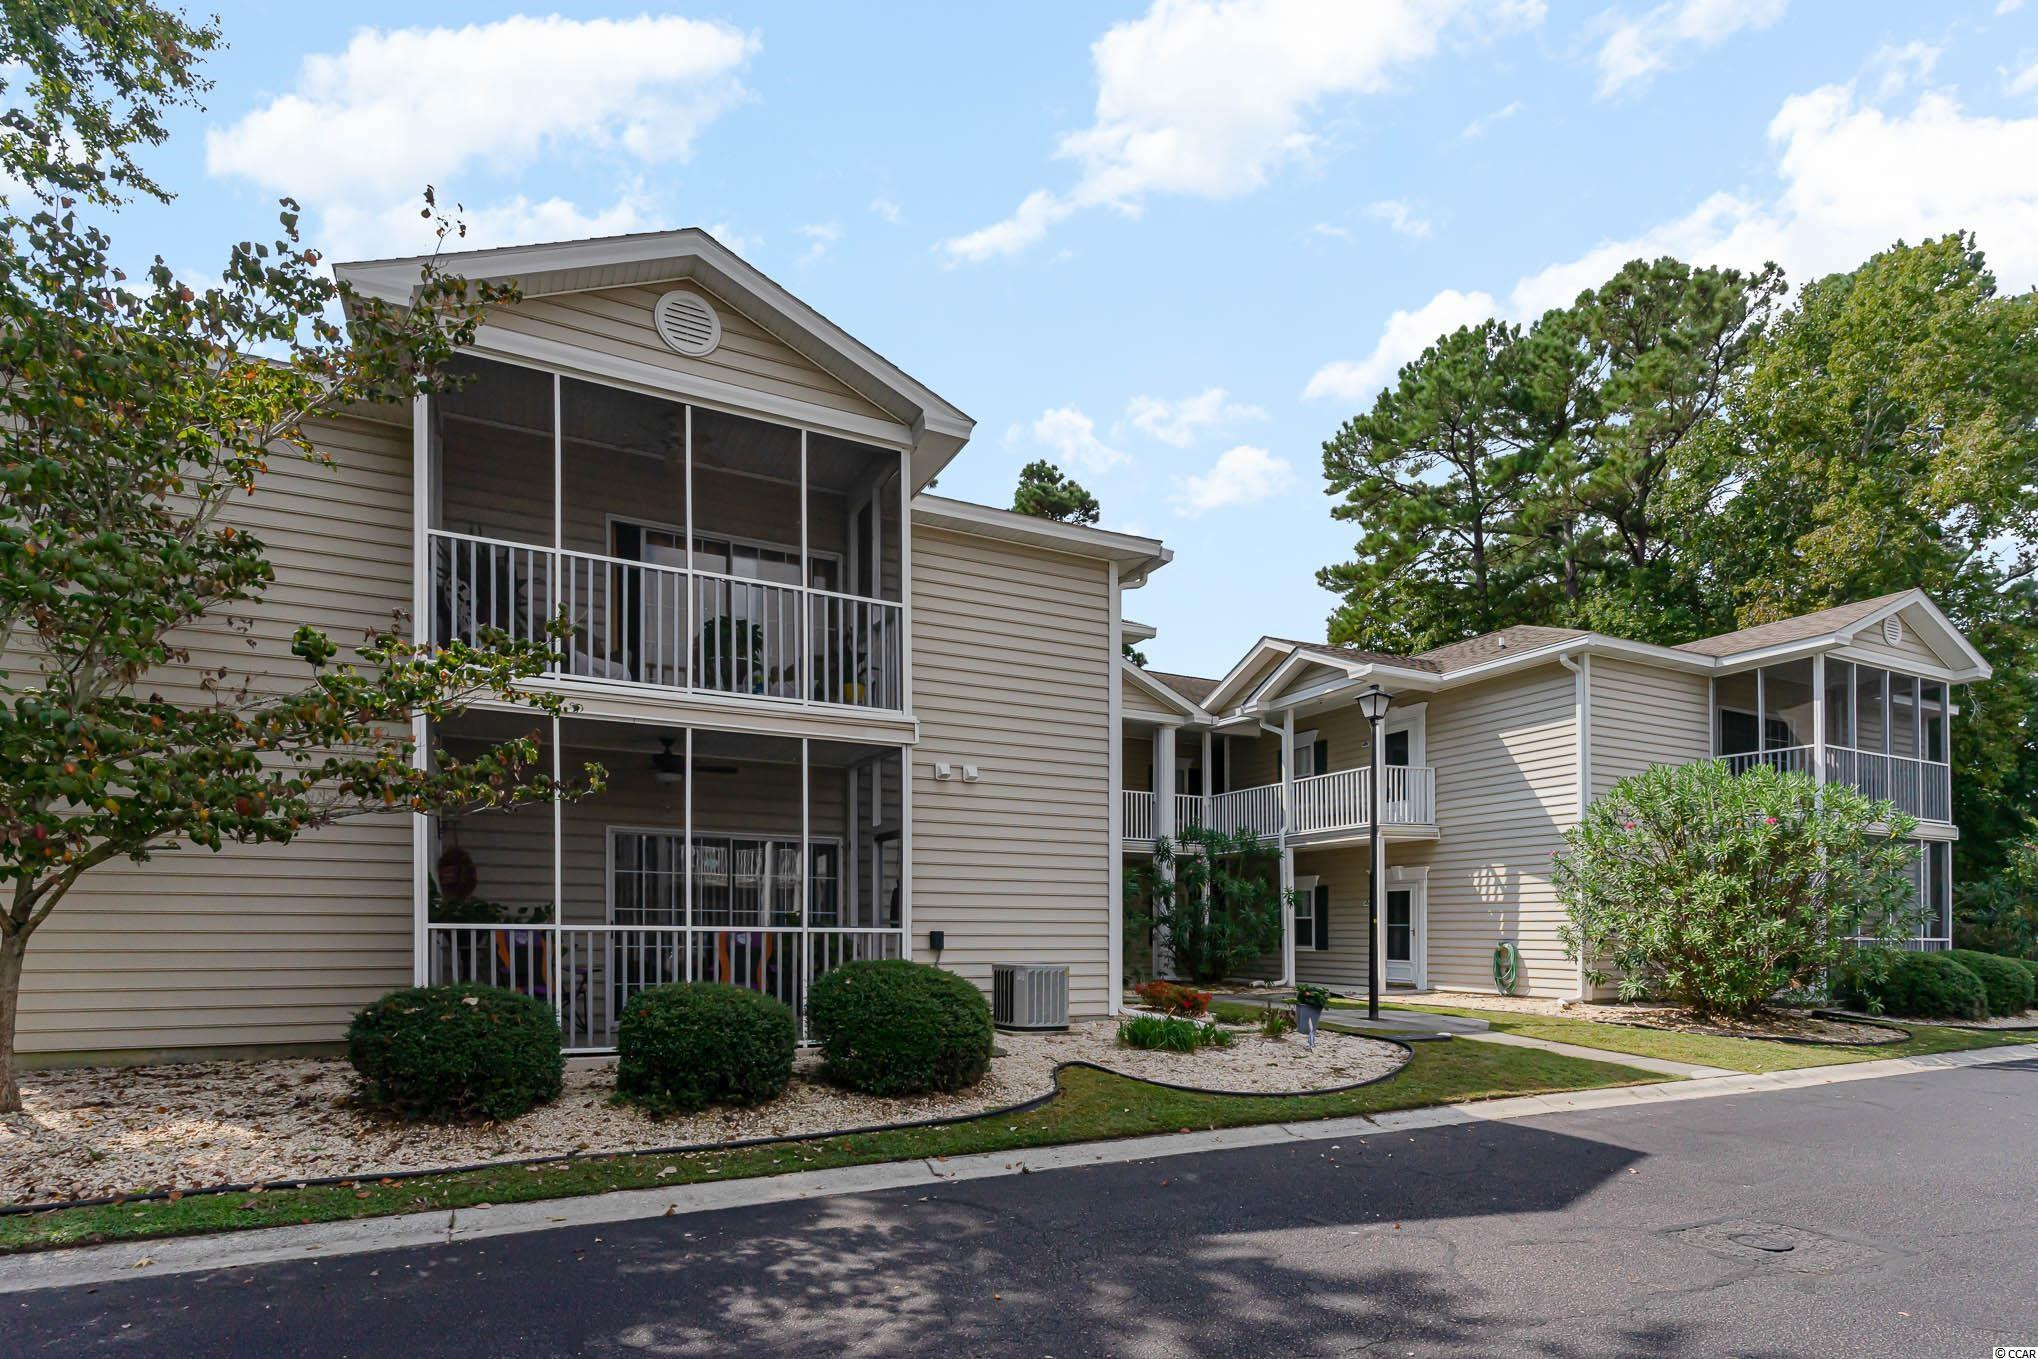 Terrific OPPORTUNITY to own the largest plan 3 bedroom , 2 bath , END UNIT, FIRST FLOOR condo is Sweetwater! This desirable unit features an open floor plan, hardwood floors in the kitchen, foyer and baths, laundry area with washer/dryer included, ceiling fans throughout, glassed-in screen porch, NEW HVAC 2019, and tons of storage. Sweetwater is a wonderful community offering owners SEVEN POOL options, tennis courts, temporary boat and RV parking, and beautiful courtyard gathering spaces. This home is just minutes from the famous Murrells Inlet Marshwalk, Brookgreen Gardens, great shopping, dining, multiple championship golf courses, all the essentials, and of course, THE BEACH! This would make a perfect primary residence, second home, or investment property. Don't delay!